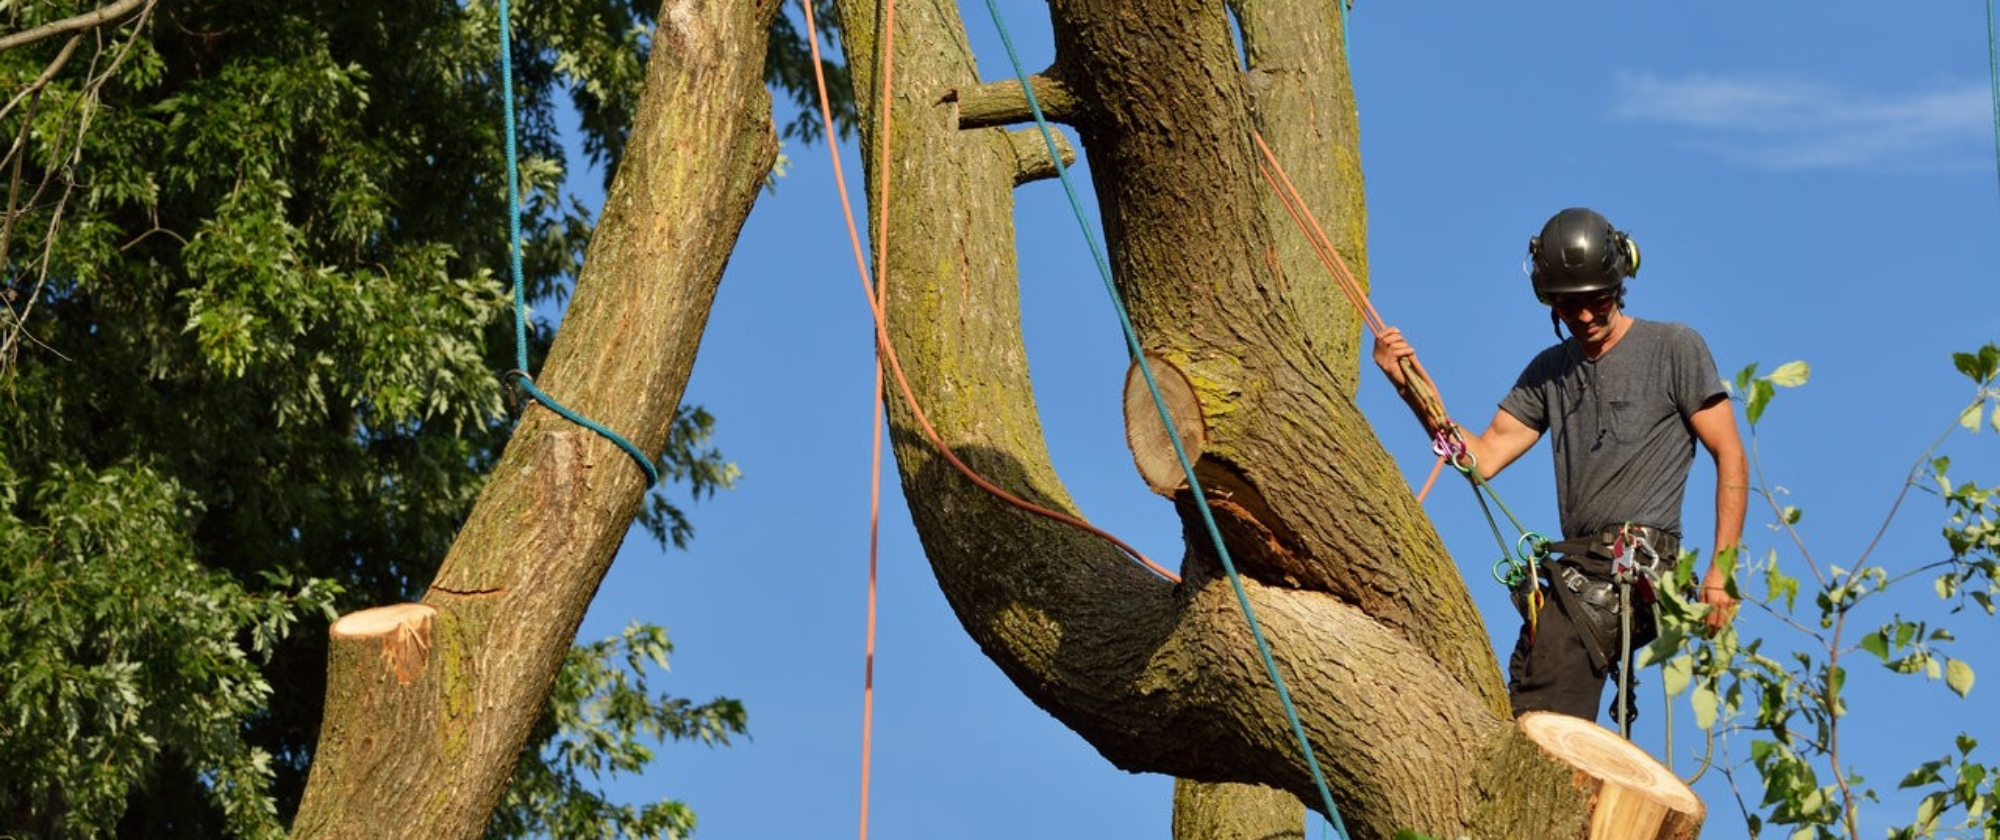 Arborist dismantling tree, holding log with ropes